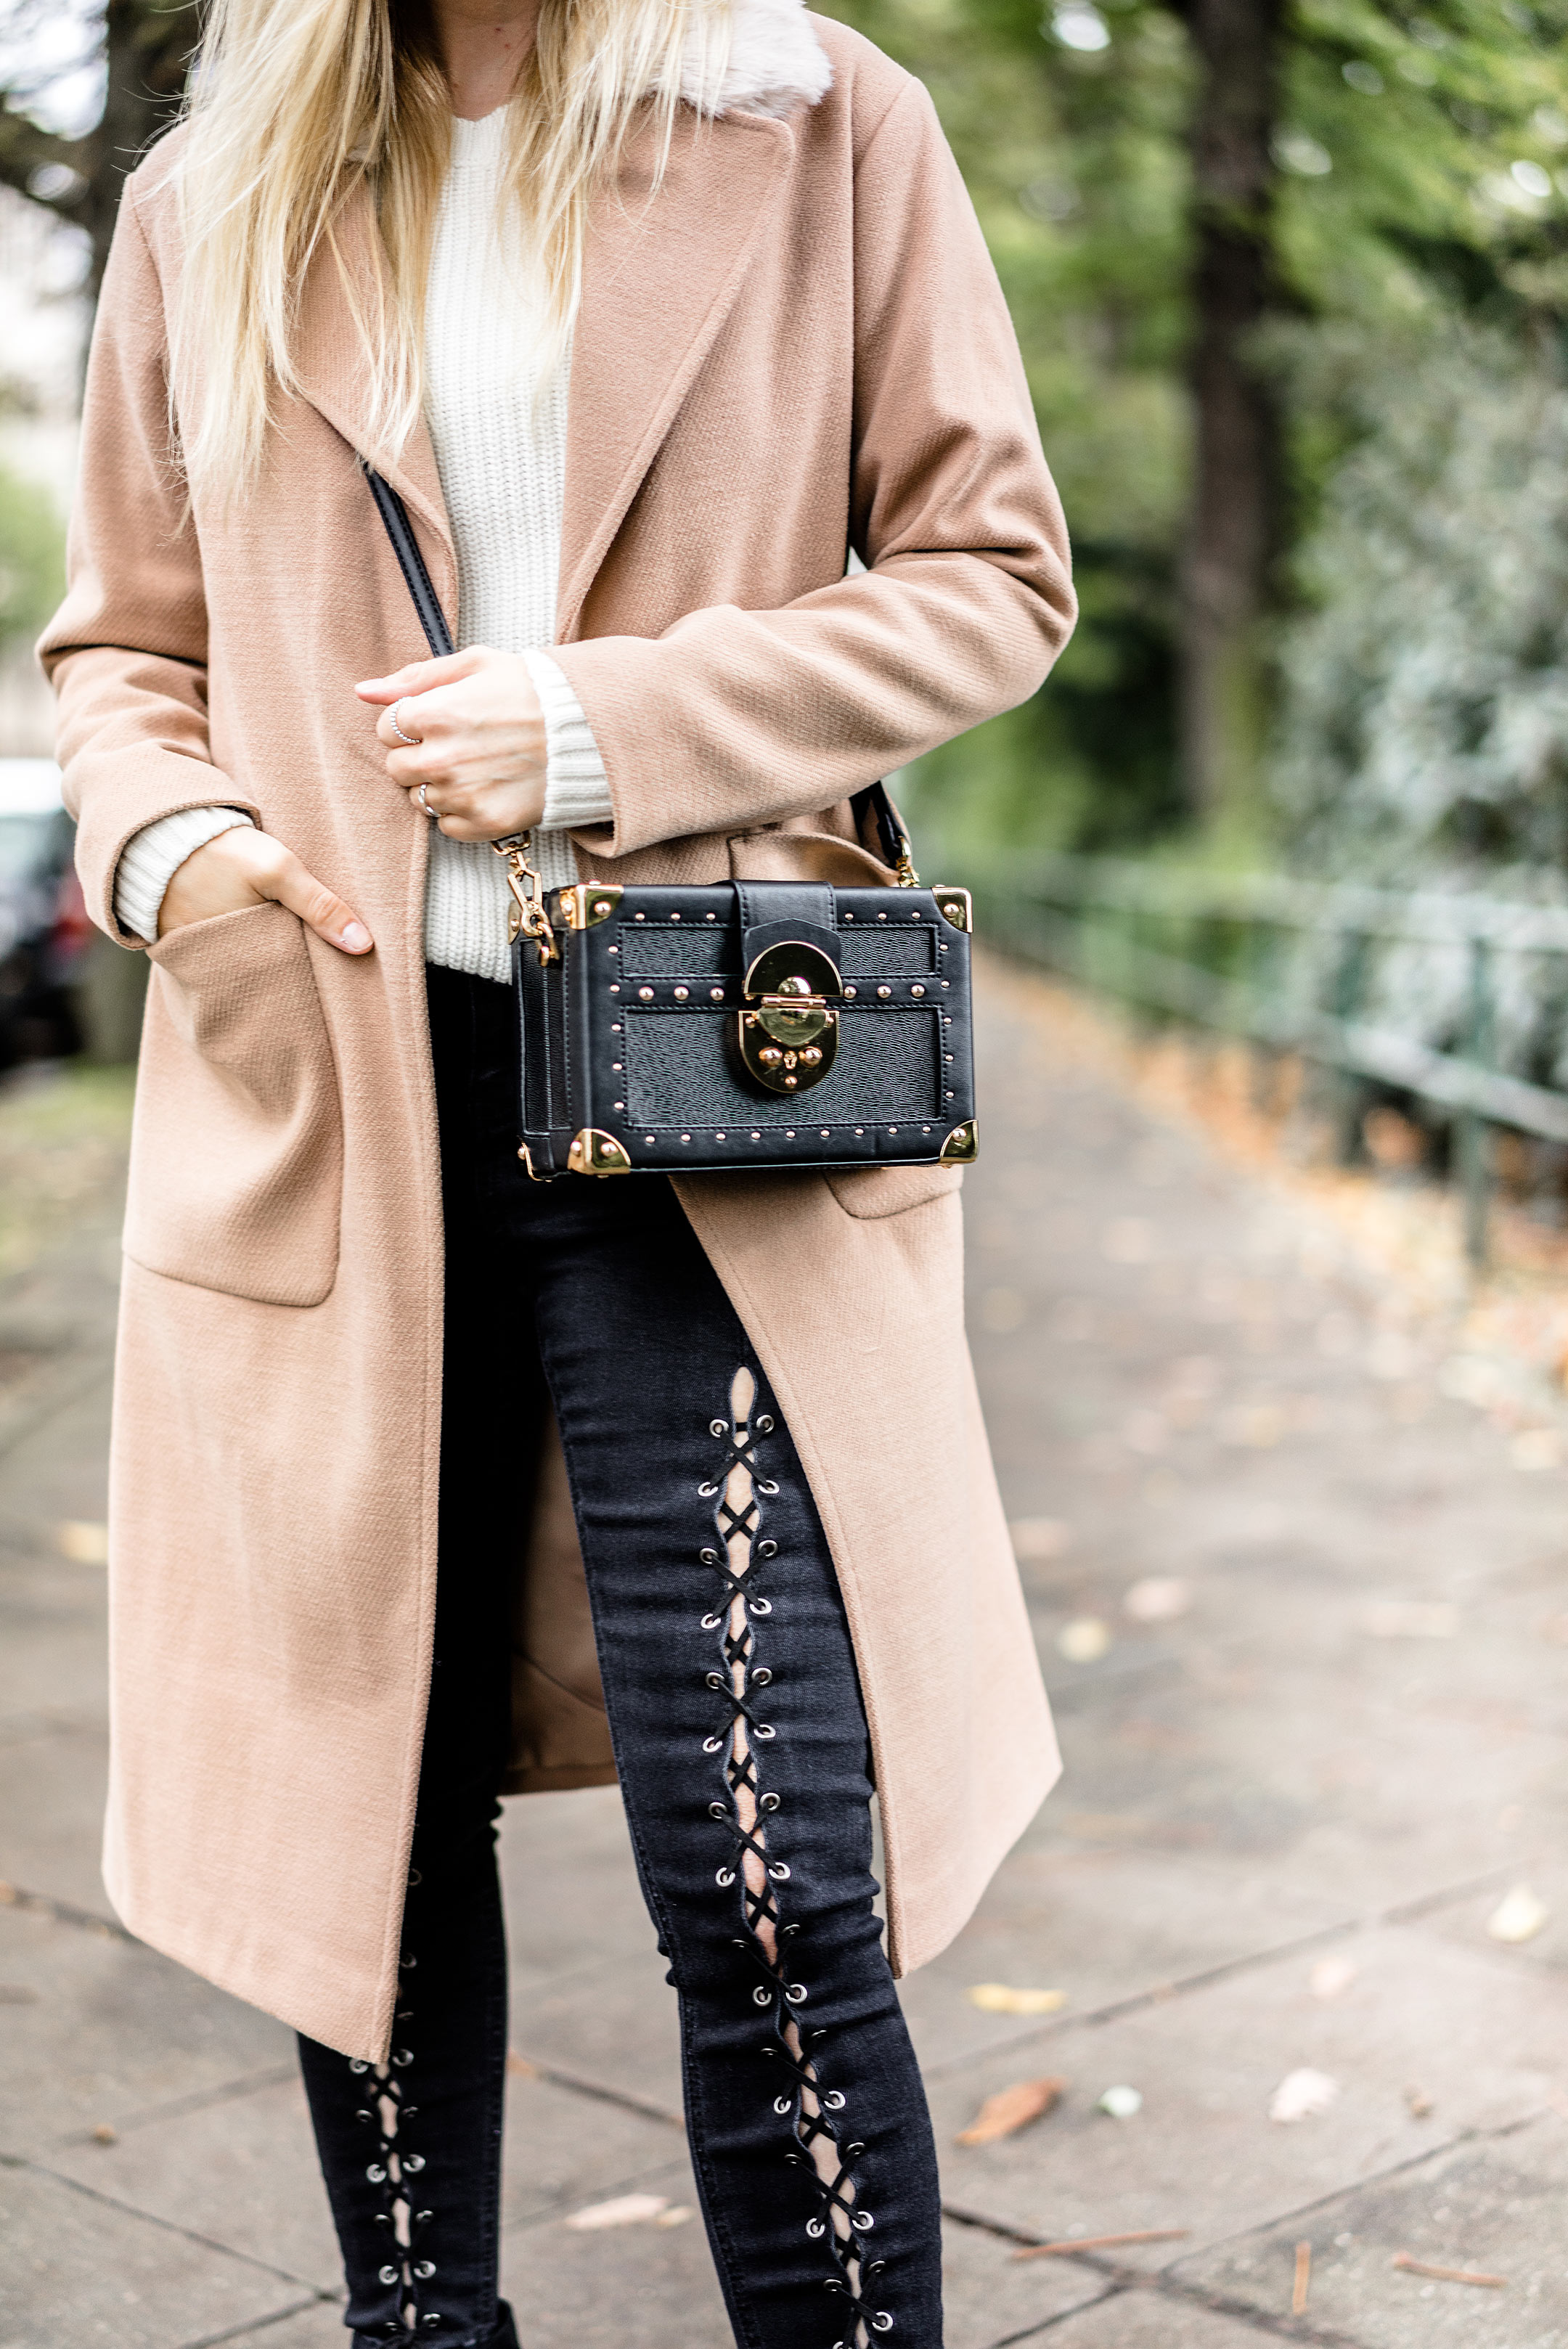 Camel Coat Jeans kombinieren Fashion Blogger Sunnyinga